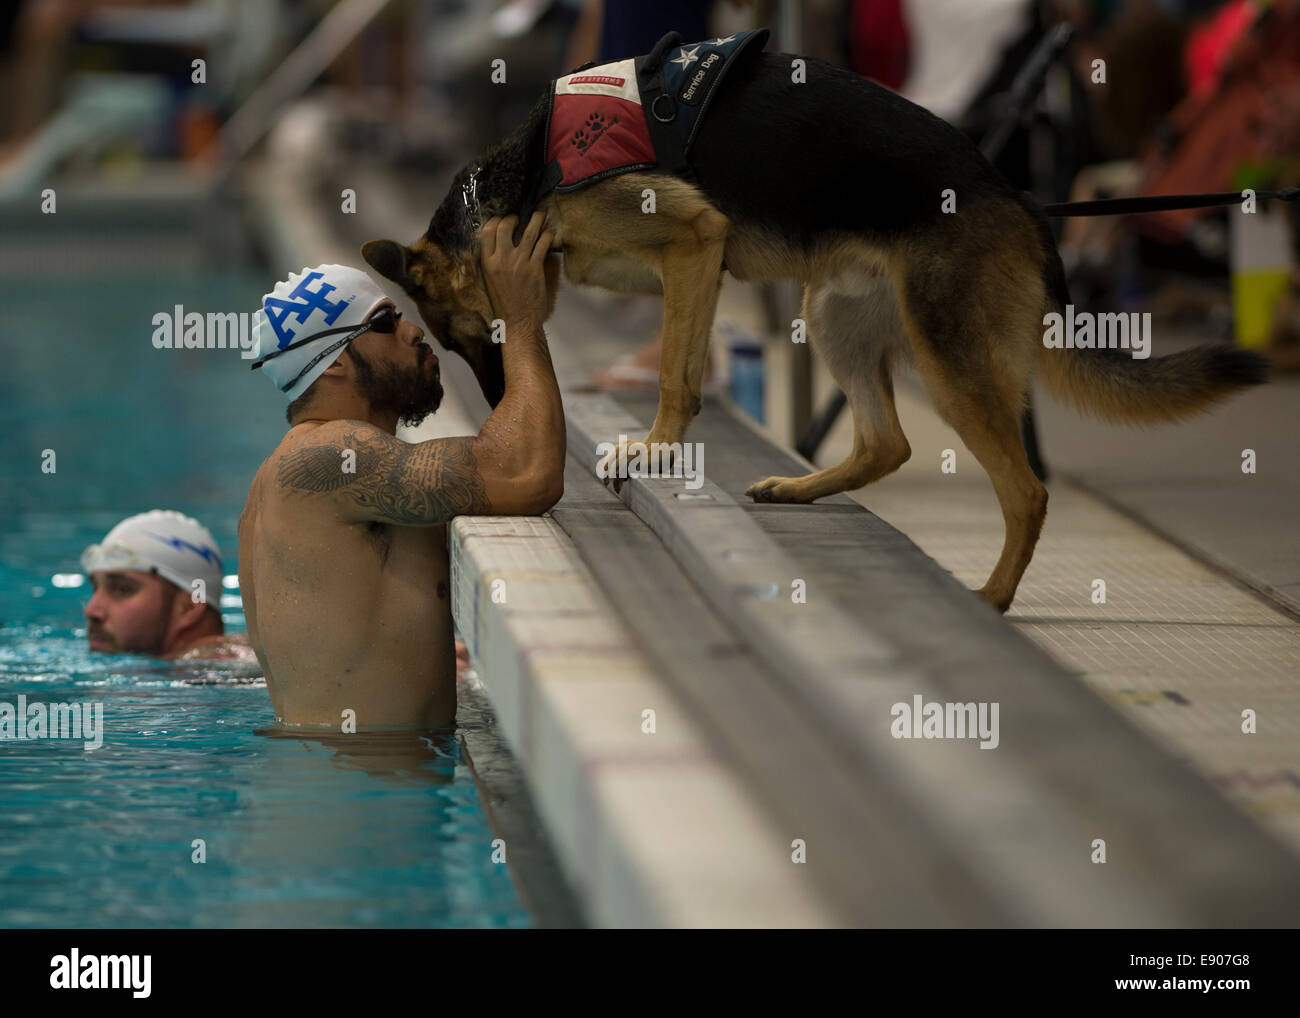 U.S. Air Force swimmer August O'Neill kisses his service dog, Kai, during the 2014 Warrior Games in Colorado Springs, Stock Photo